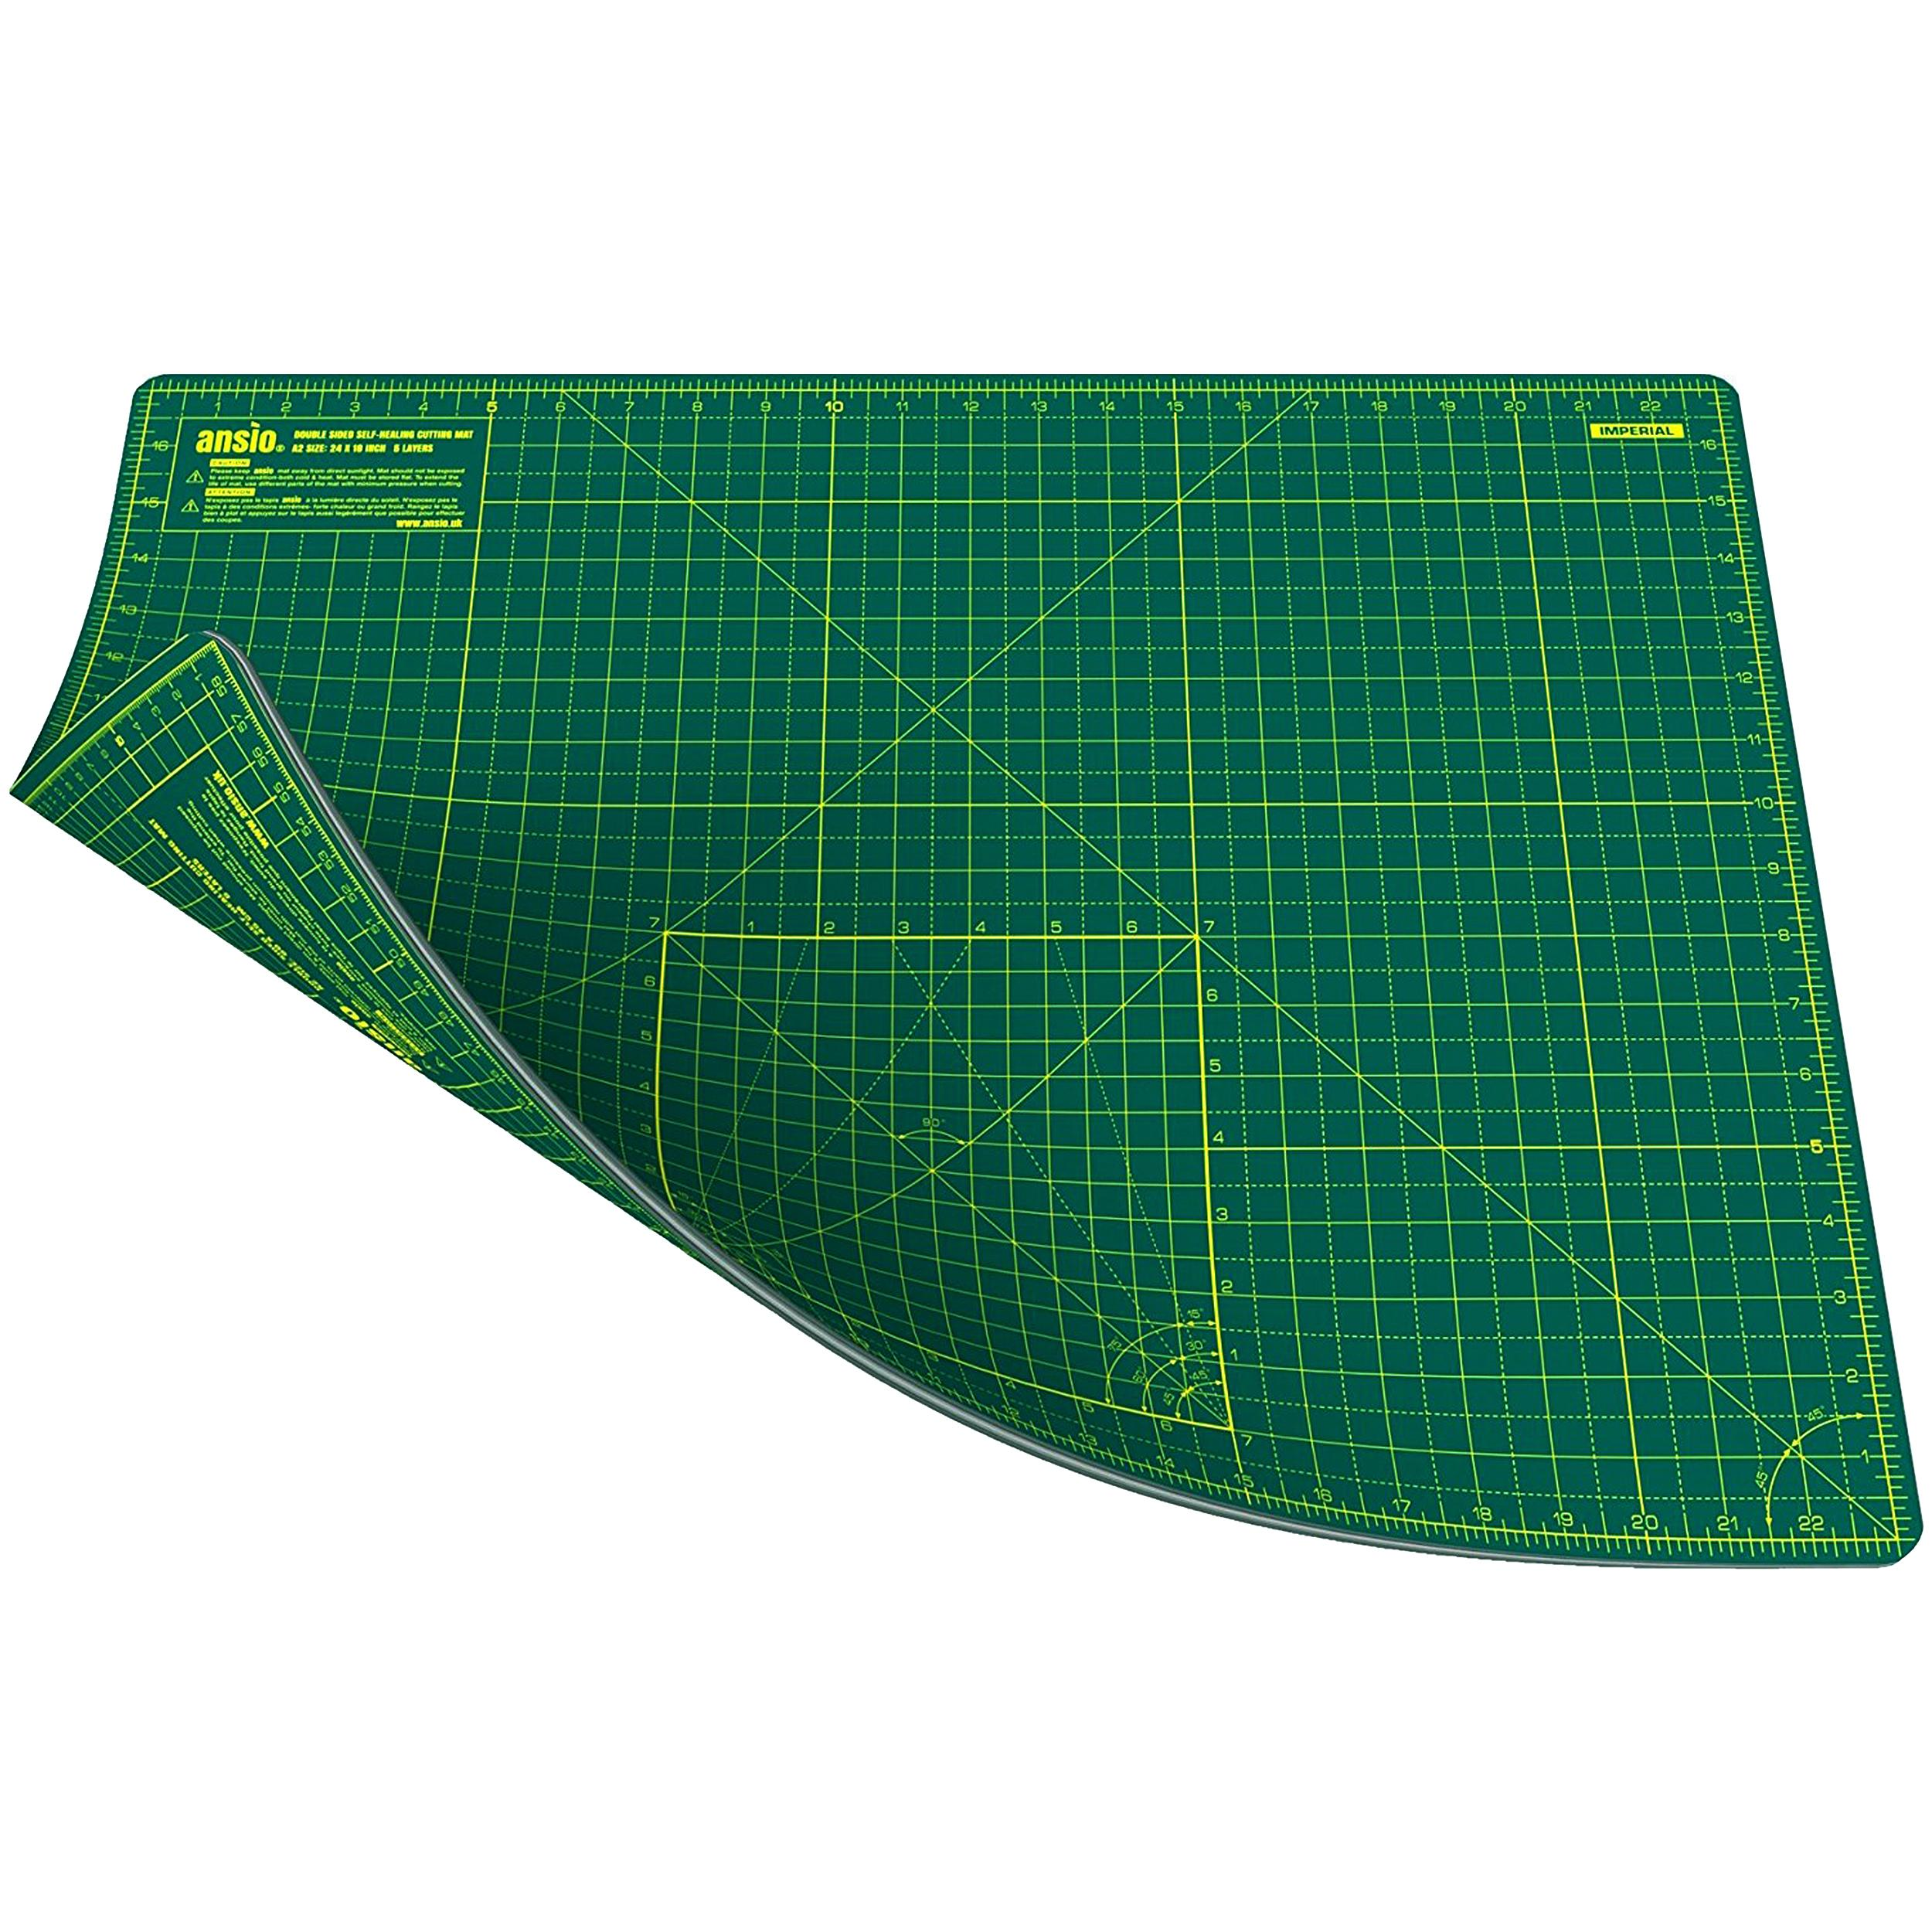 grid non lines crafts models slip board mat cutter itm cutting printed knife